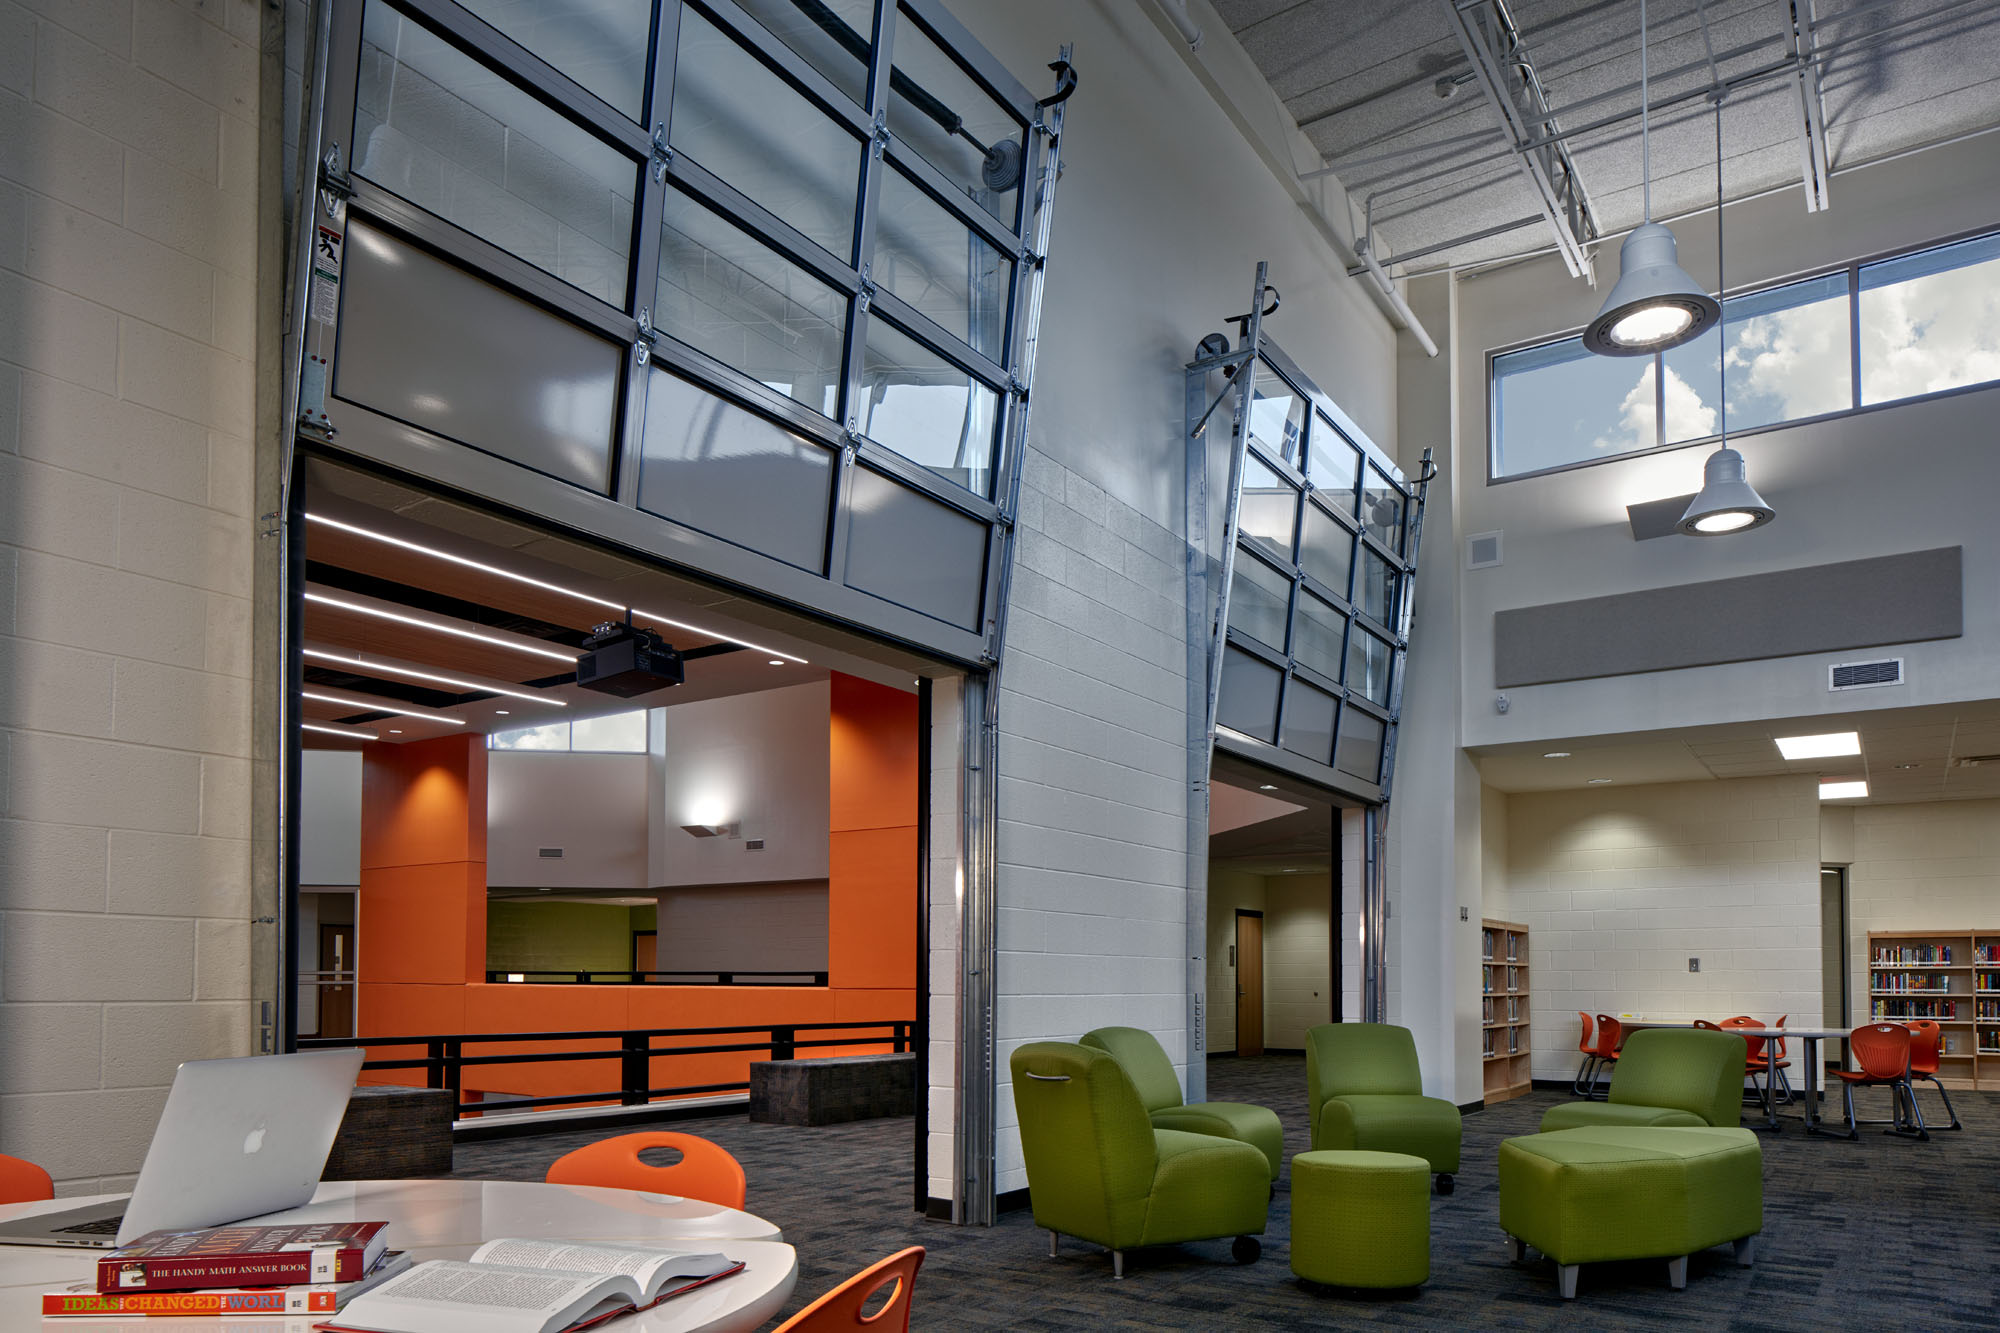 Architectural Innovations For Immersive Learning Environments In K 12 Schools Architect